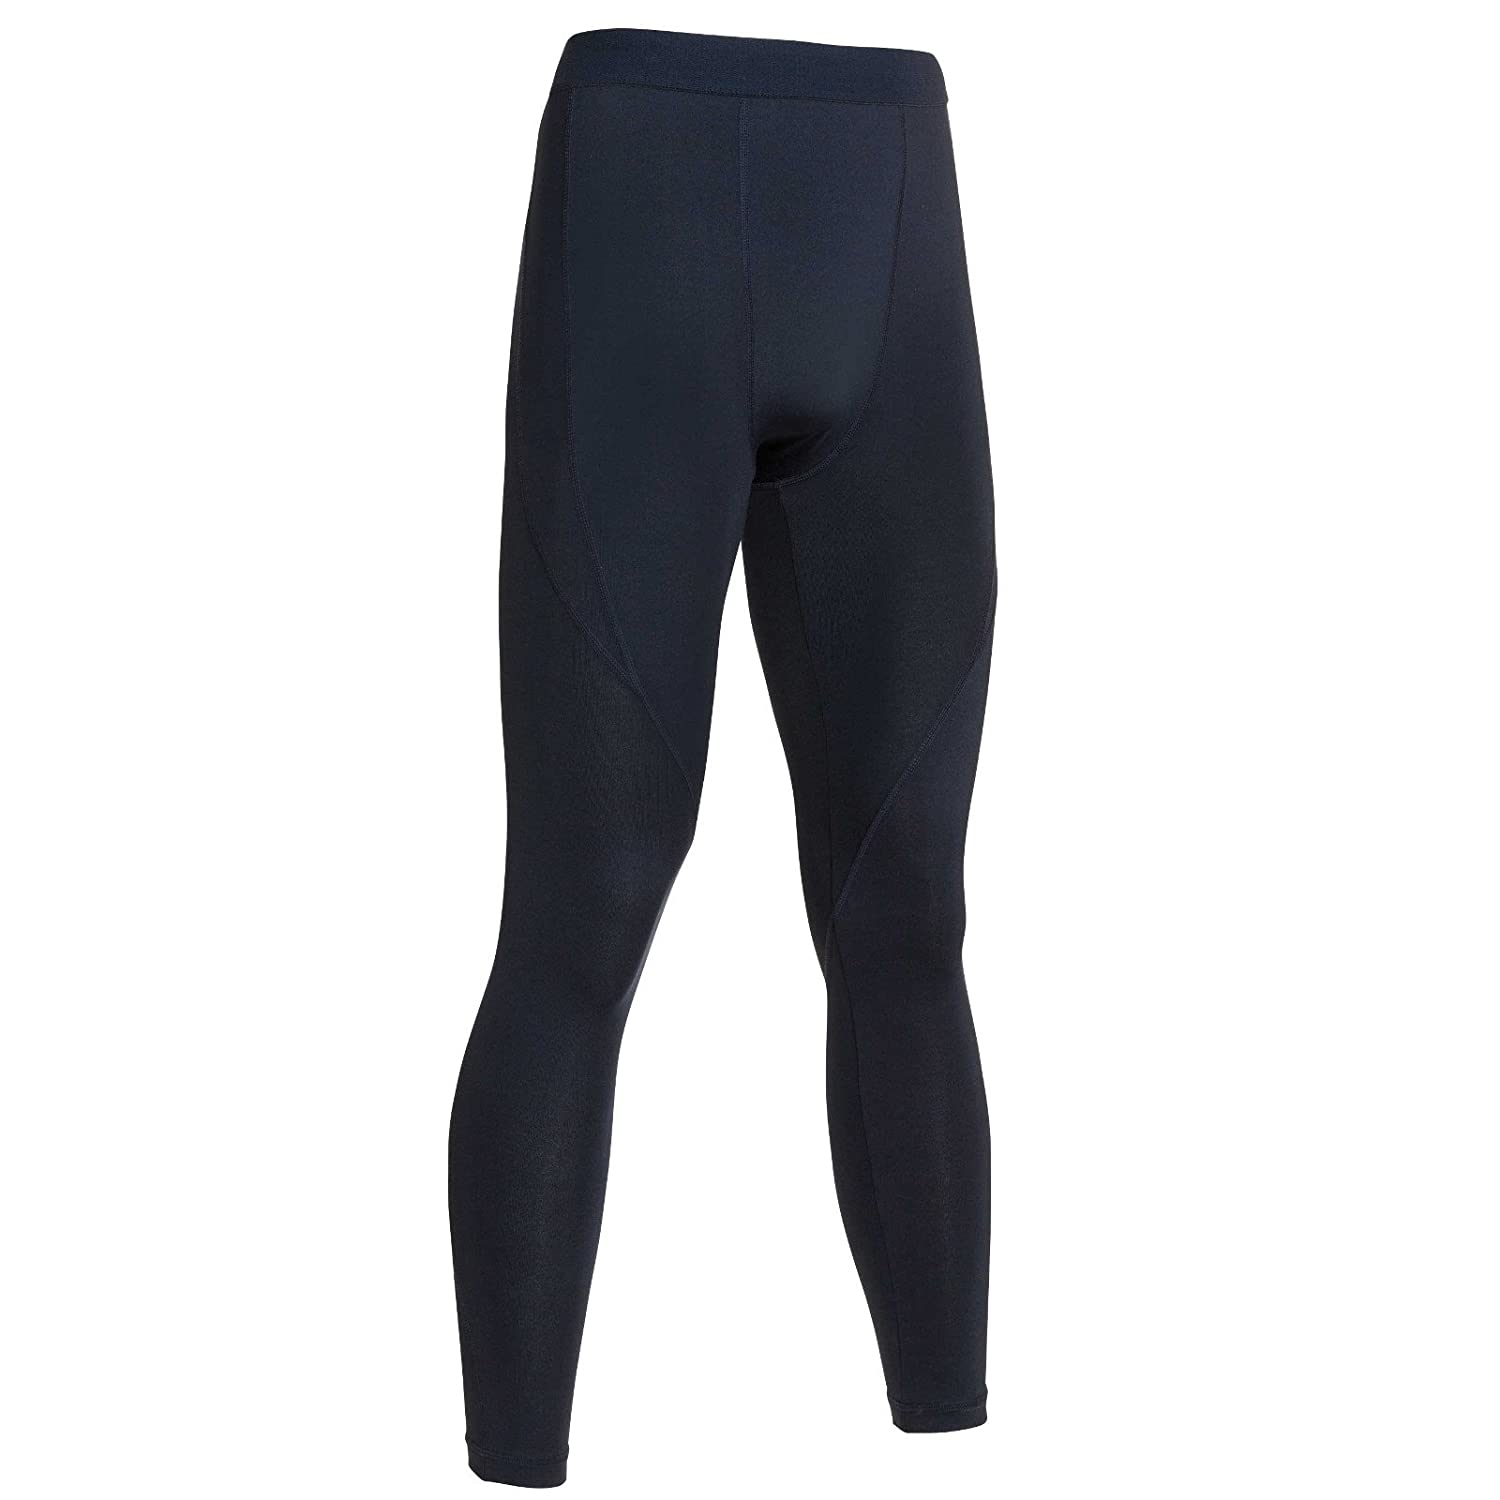 i-sports Base Layer Tights Junior Unisex Sports Compression Leggings/Pants